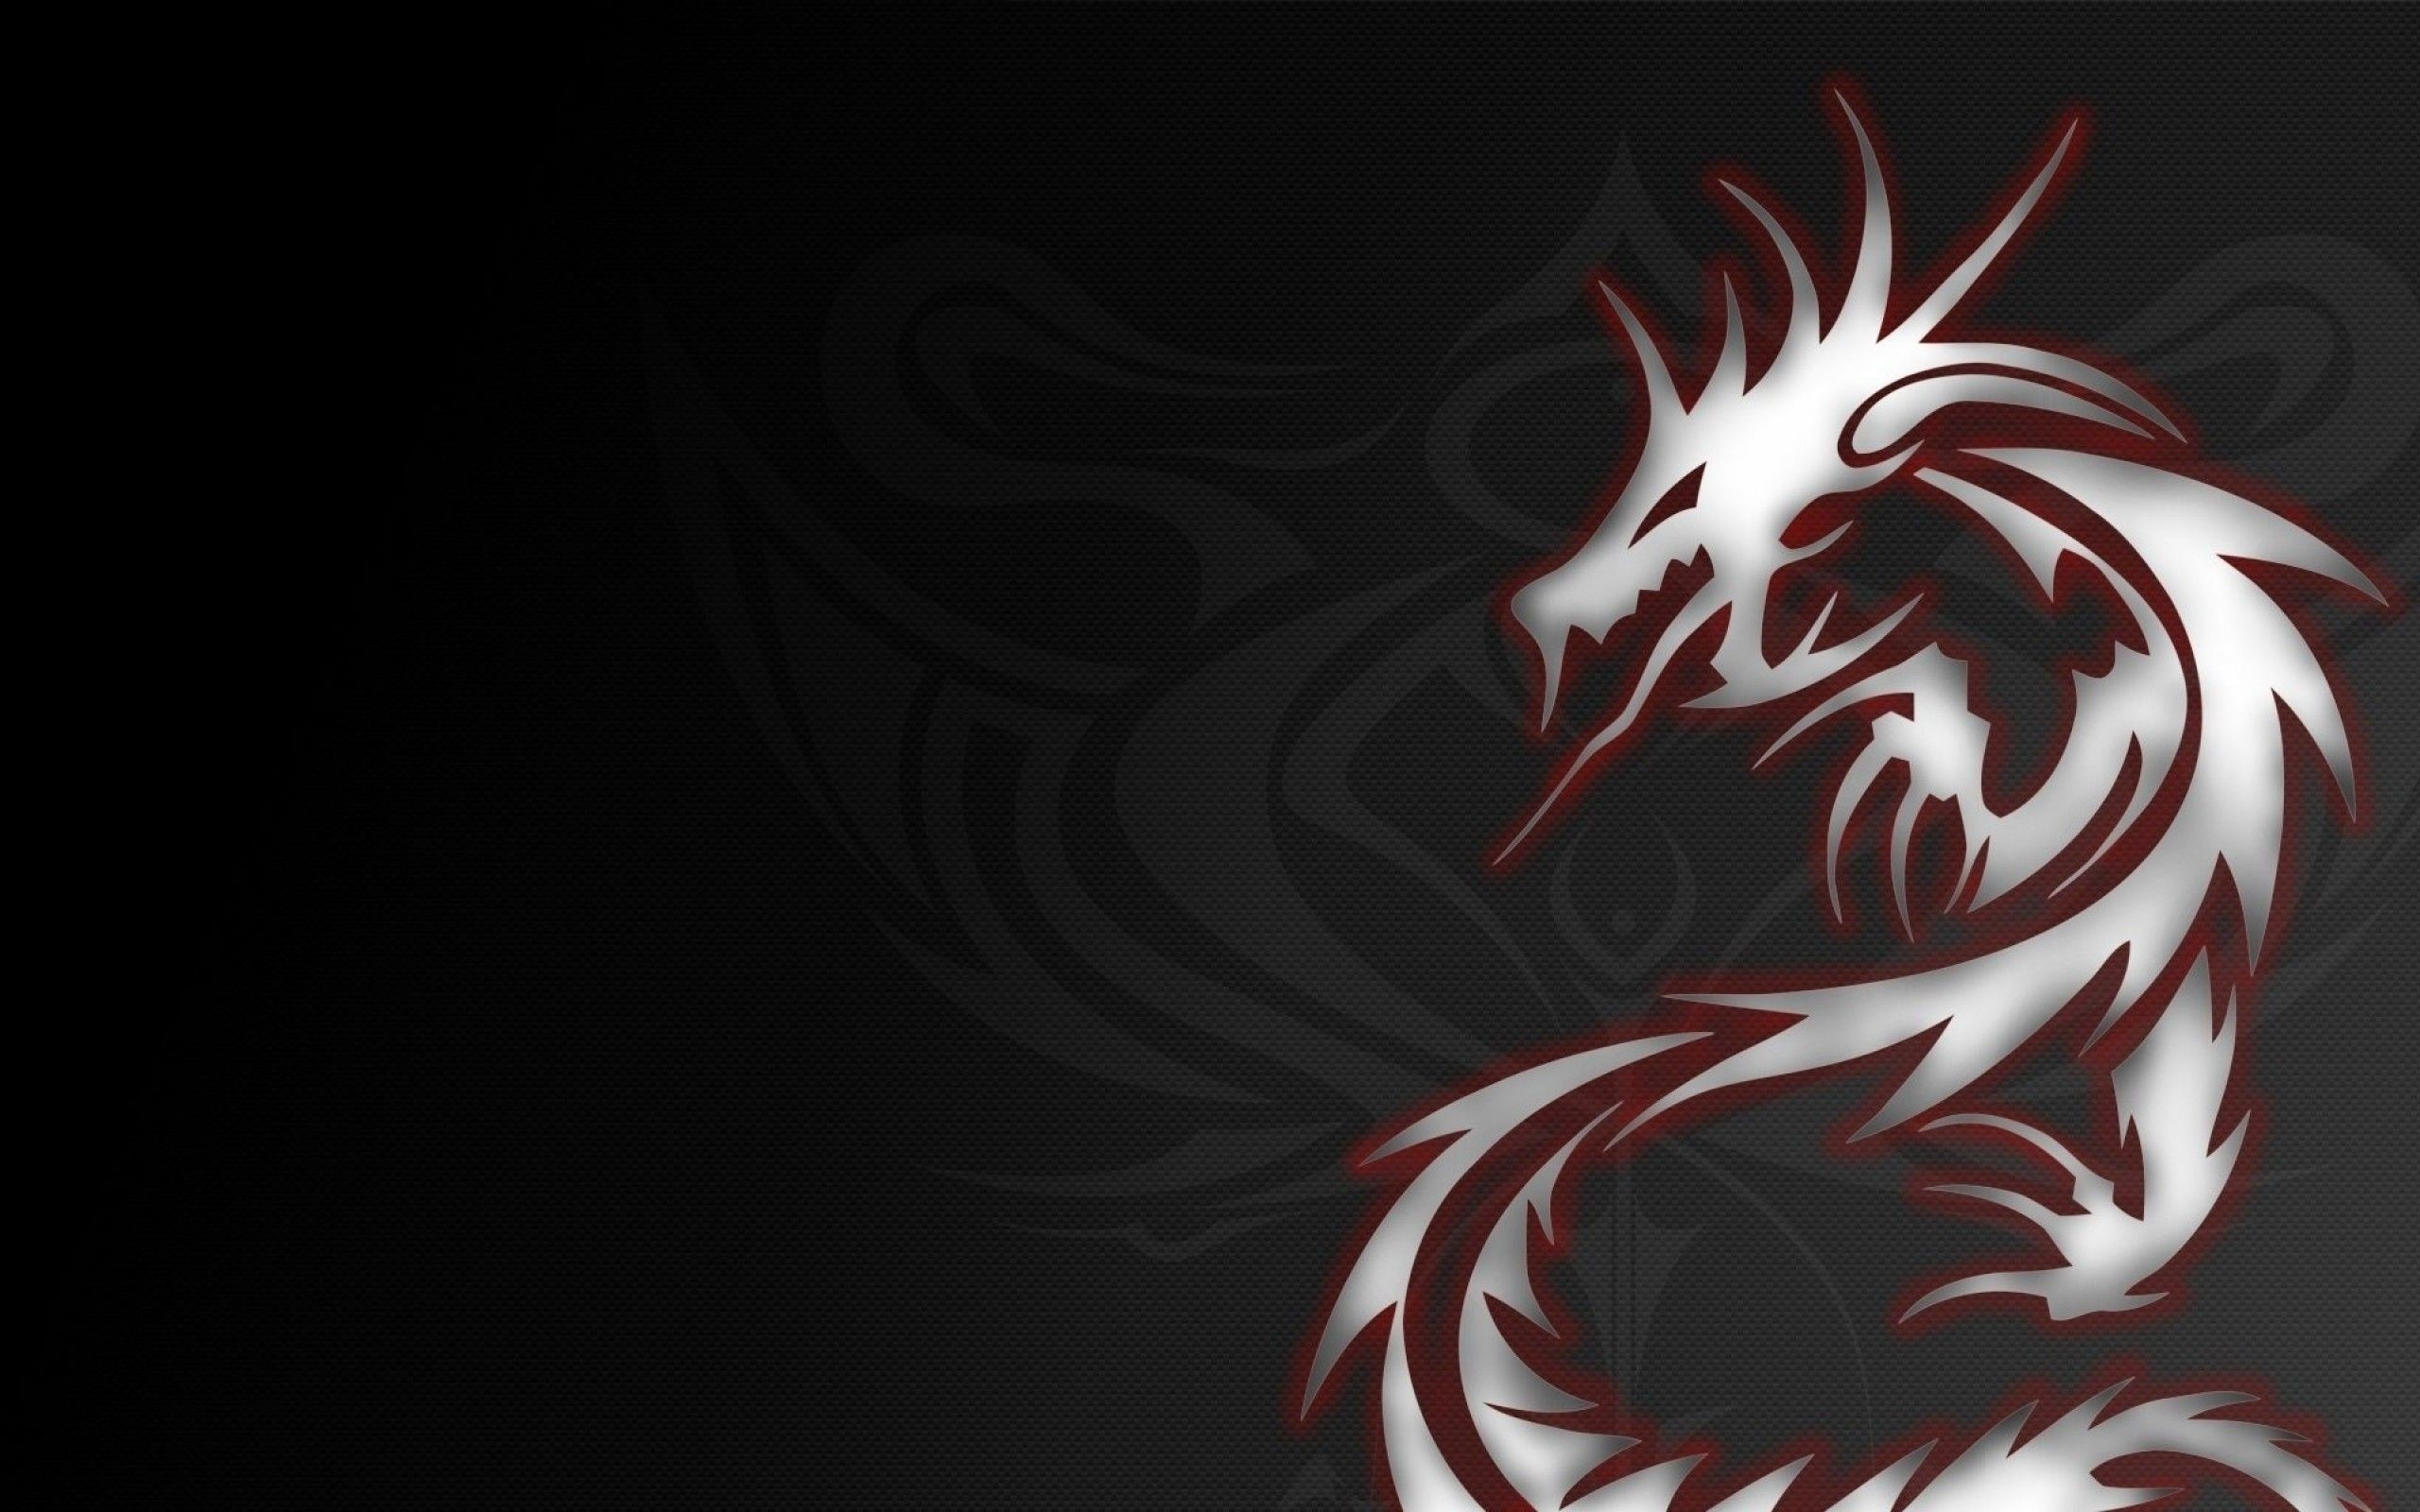 2560x1600 Download Dragon Art Tattoo Black Wallpaper Images HD Free Desktop .